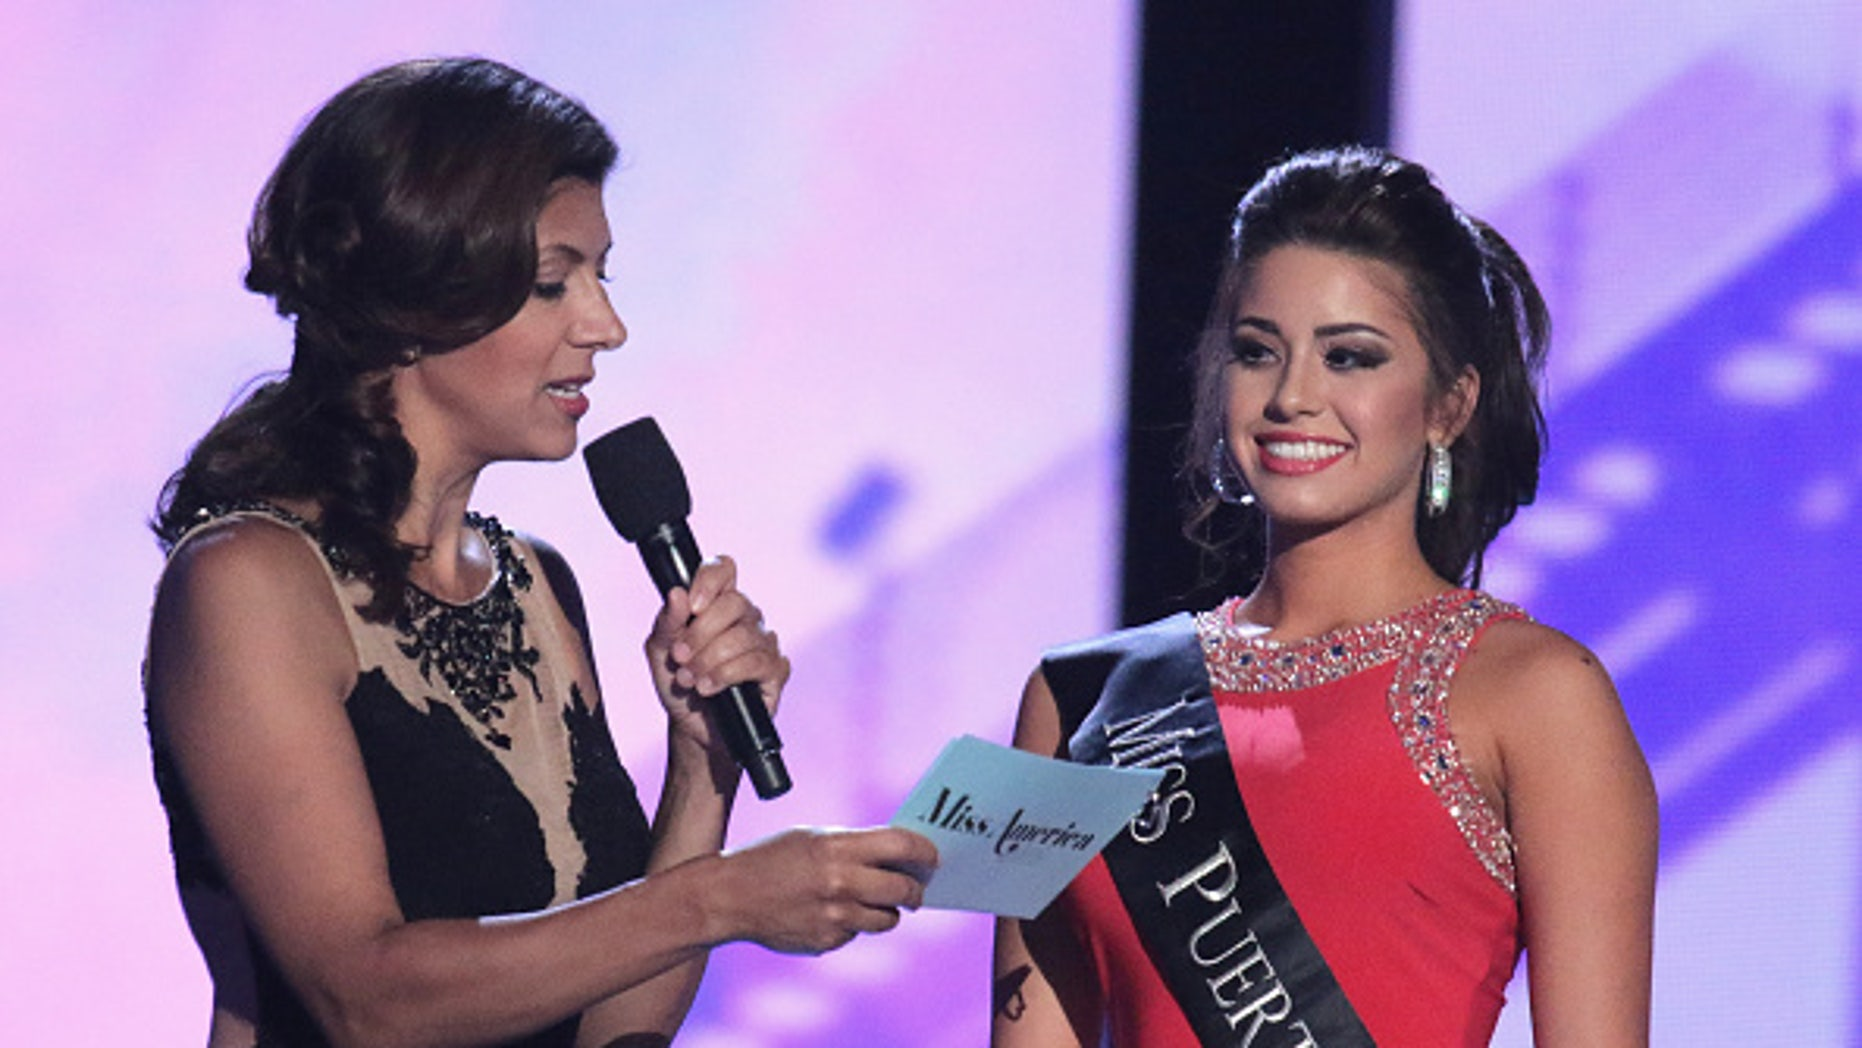 ATLANTIC CITY, NJ - SEPTEMBER 08:  Miss Puerto Rico, Destiny Noelle Velez speaks at the Tuesday Night Preliminaries - 2016 Miss America Competition at Atlantic City Boardwalk Hall on September 8, 2015 in Atlantic City, New Jersey.  (Photo by Donald Kravitz/Getty Images)